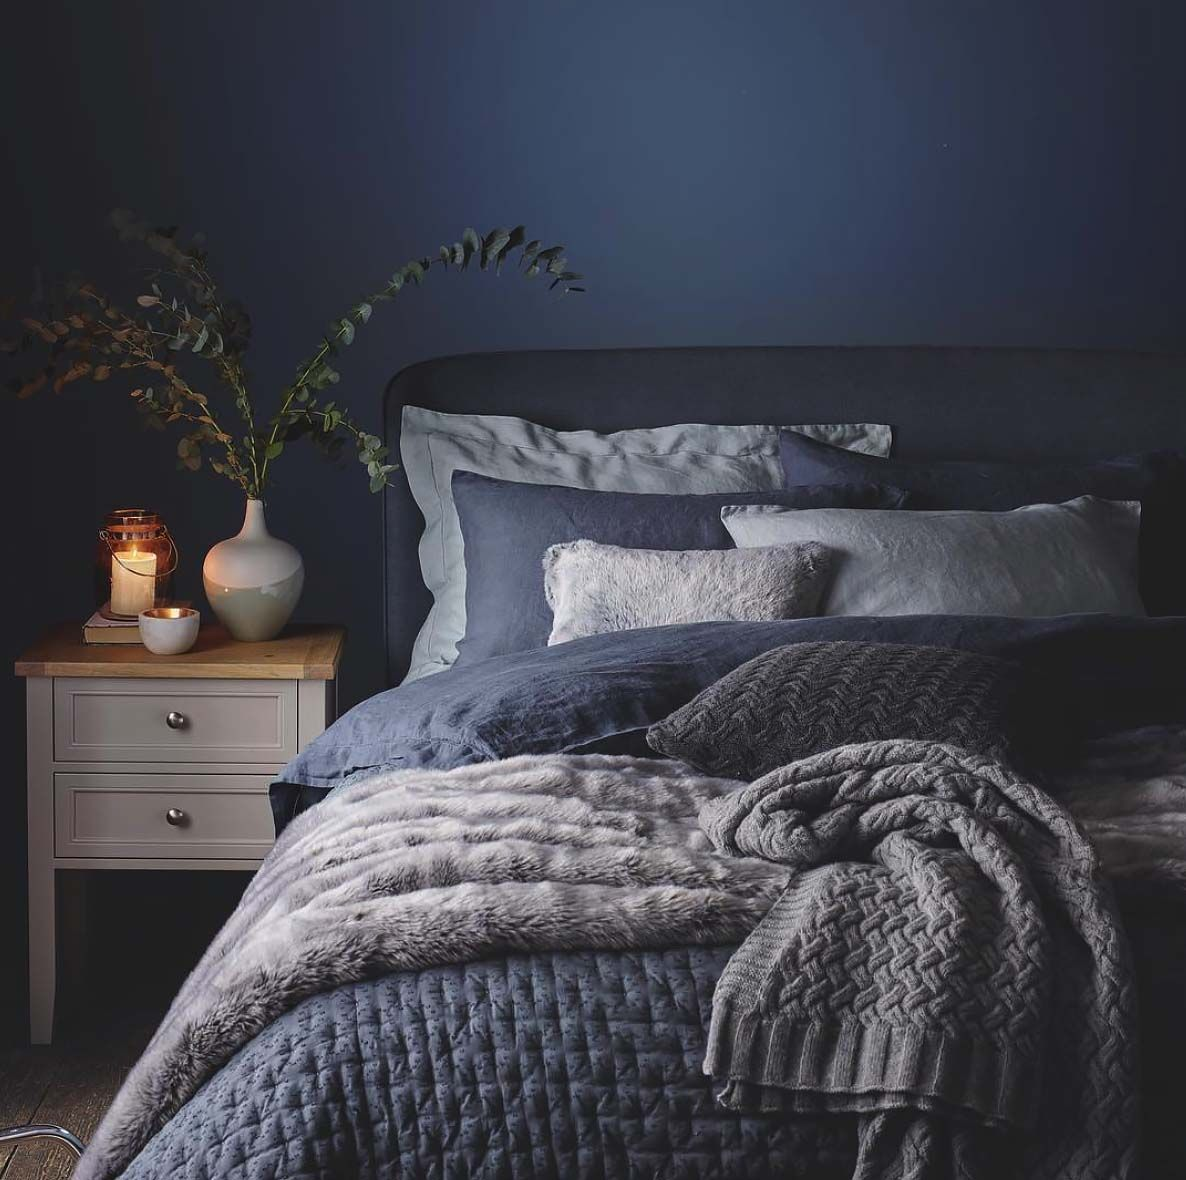 33 Ultra-cozy bedroom decorating ideas for winter warmth ...